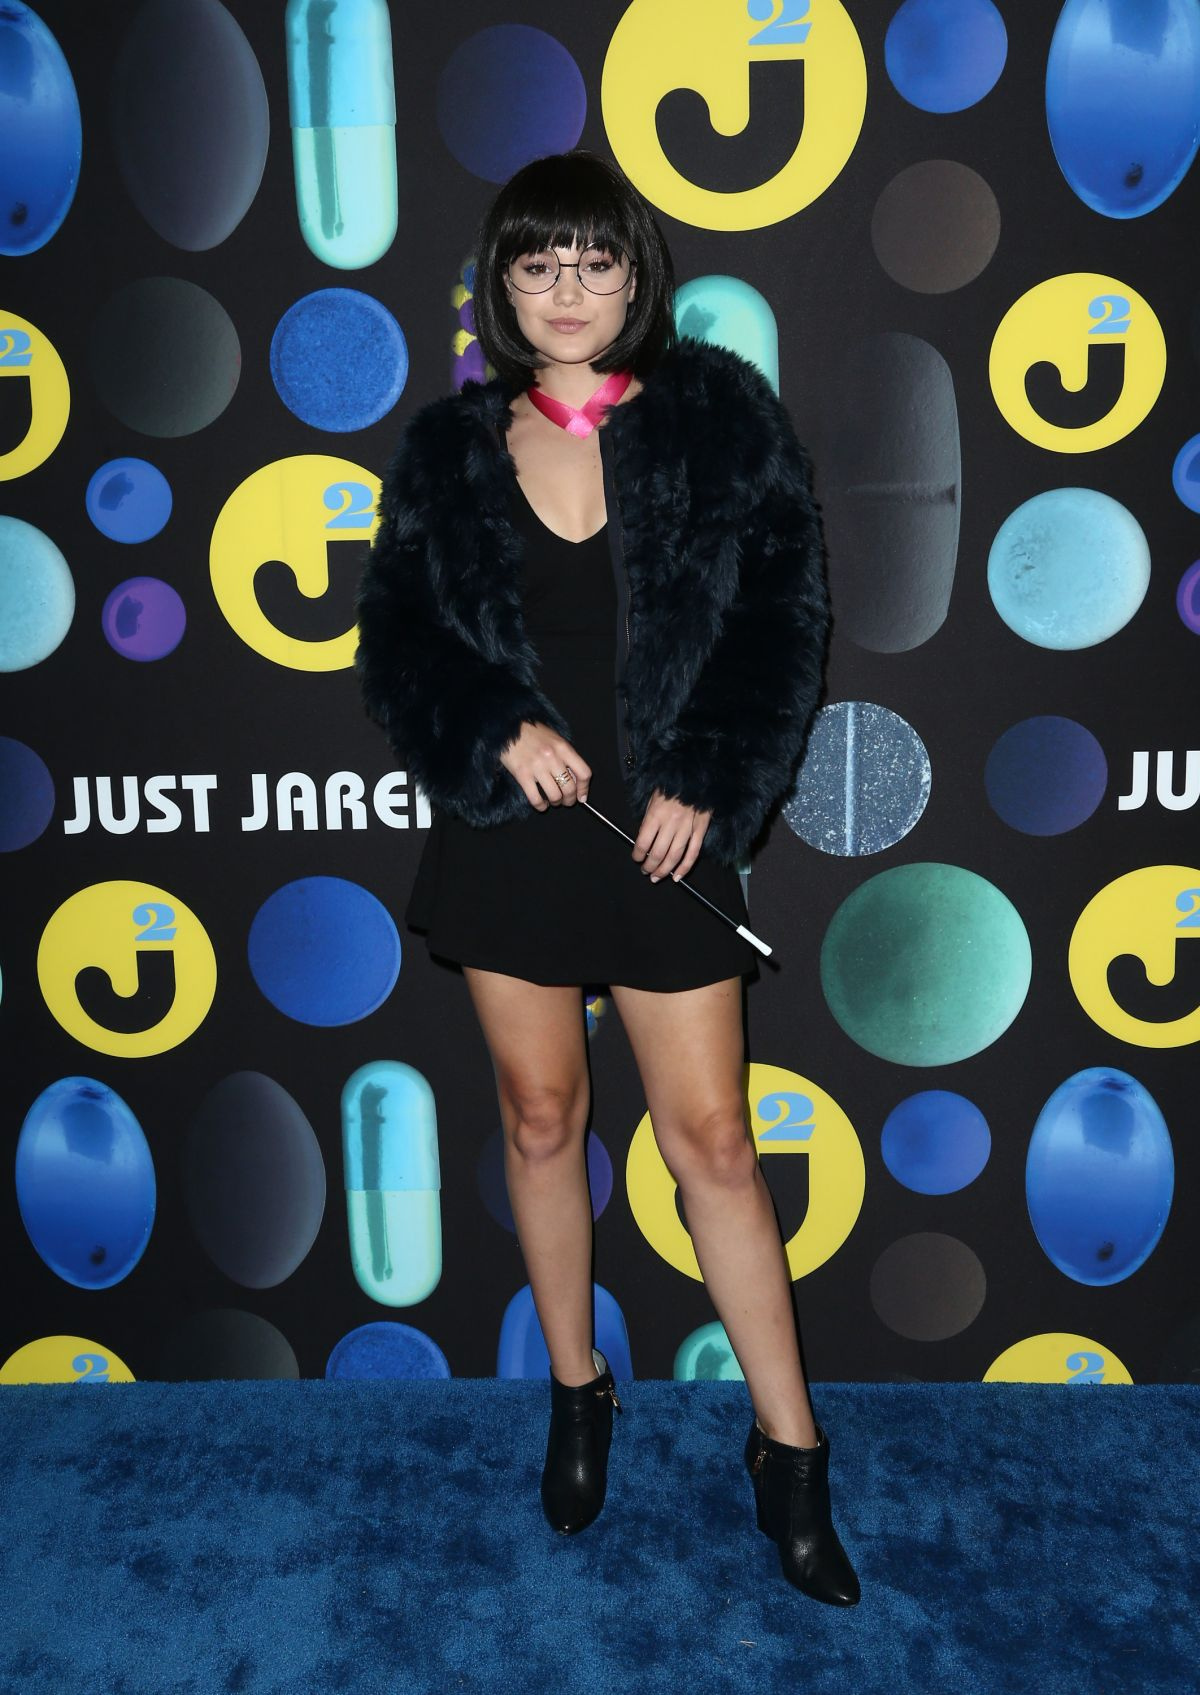 OLIVIA HOLT at Just Jared Halloween Party in Hollywood 10/31/2015